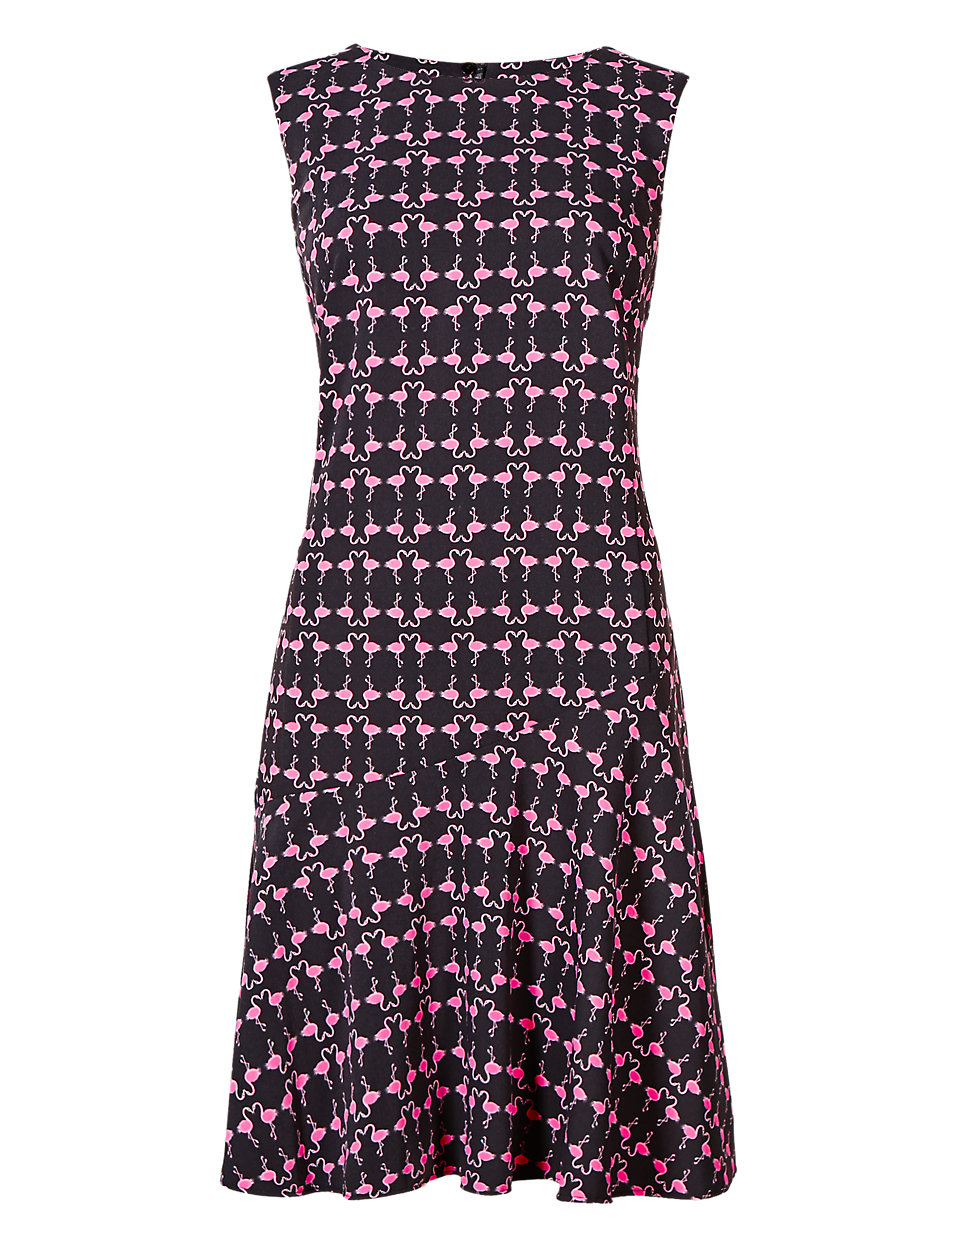 Conversational Print Skater Dress £45 from Marks & Spencer